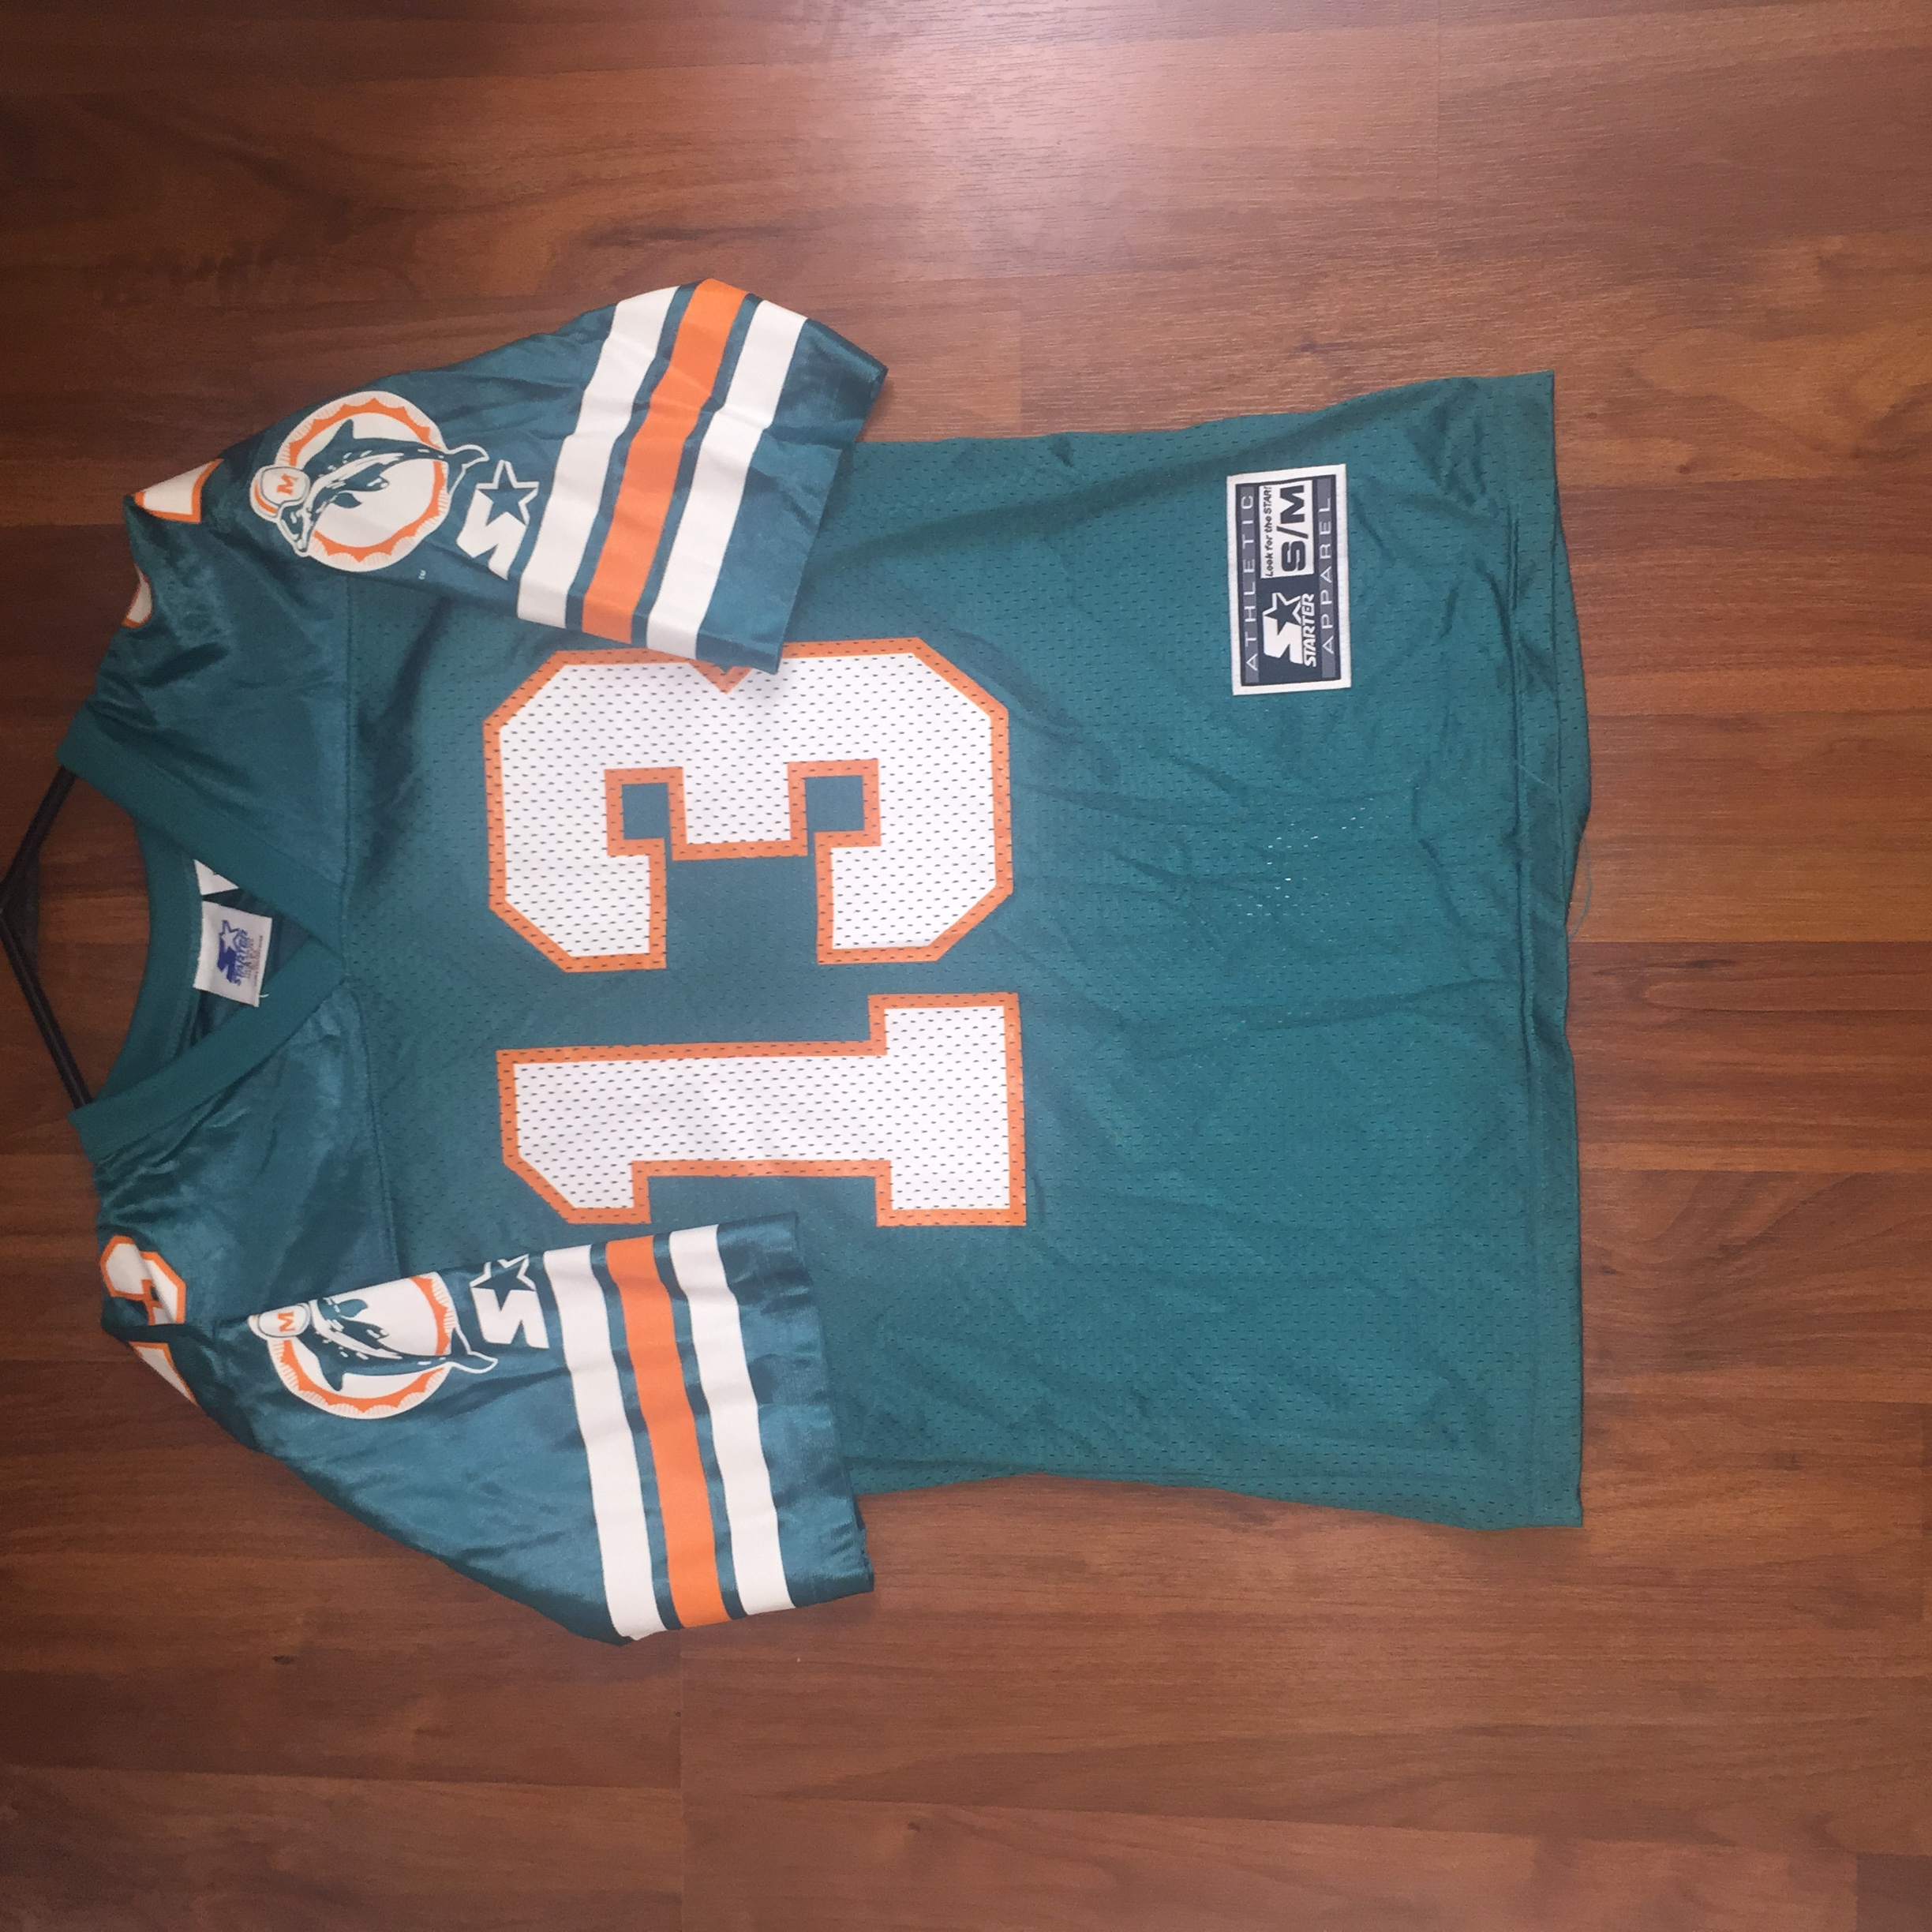 the best attitude 1ebed efb6b Dan Marino Miami Dolphins Starter Jersey youth size s/m from Furious Styles  Vintage